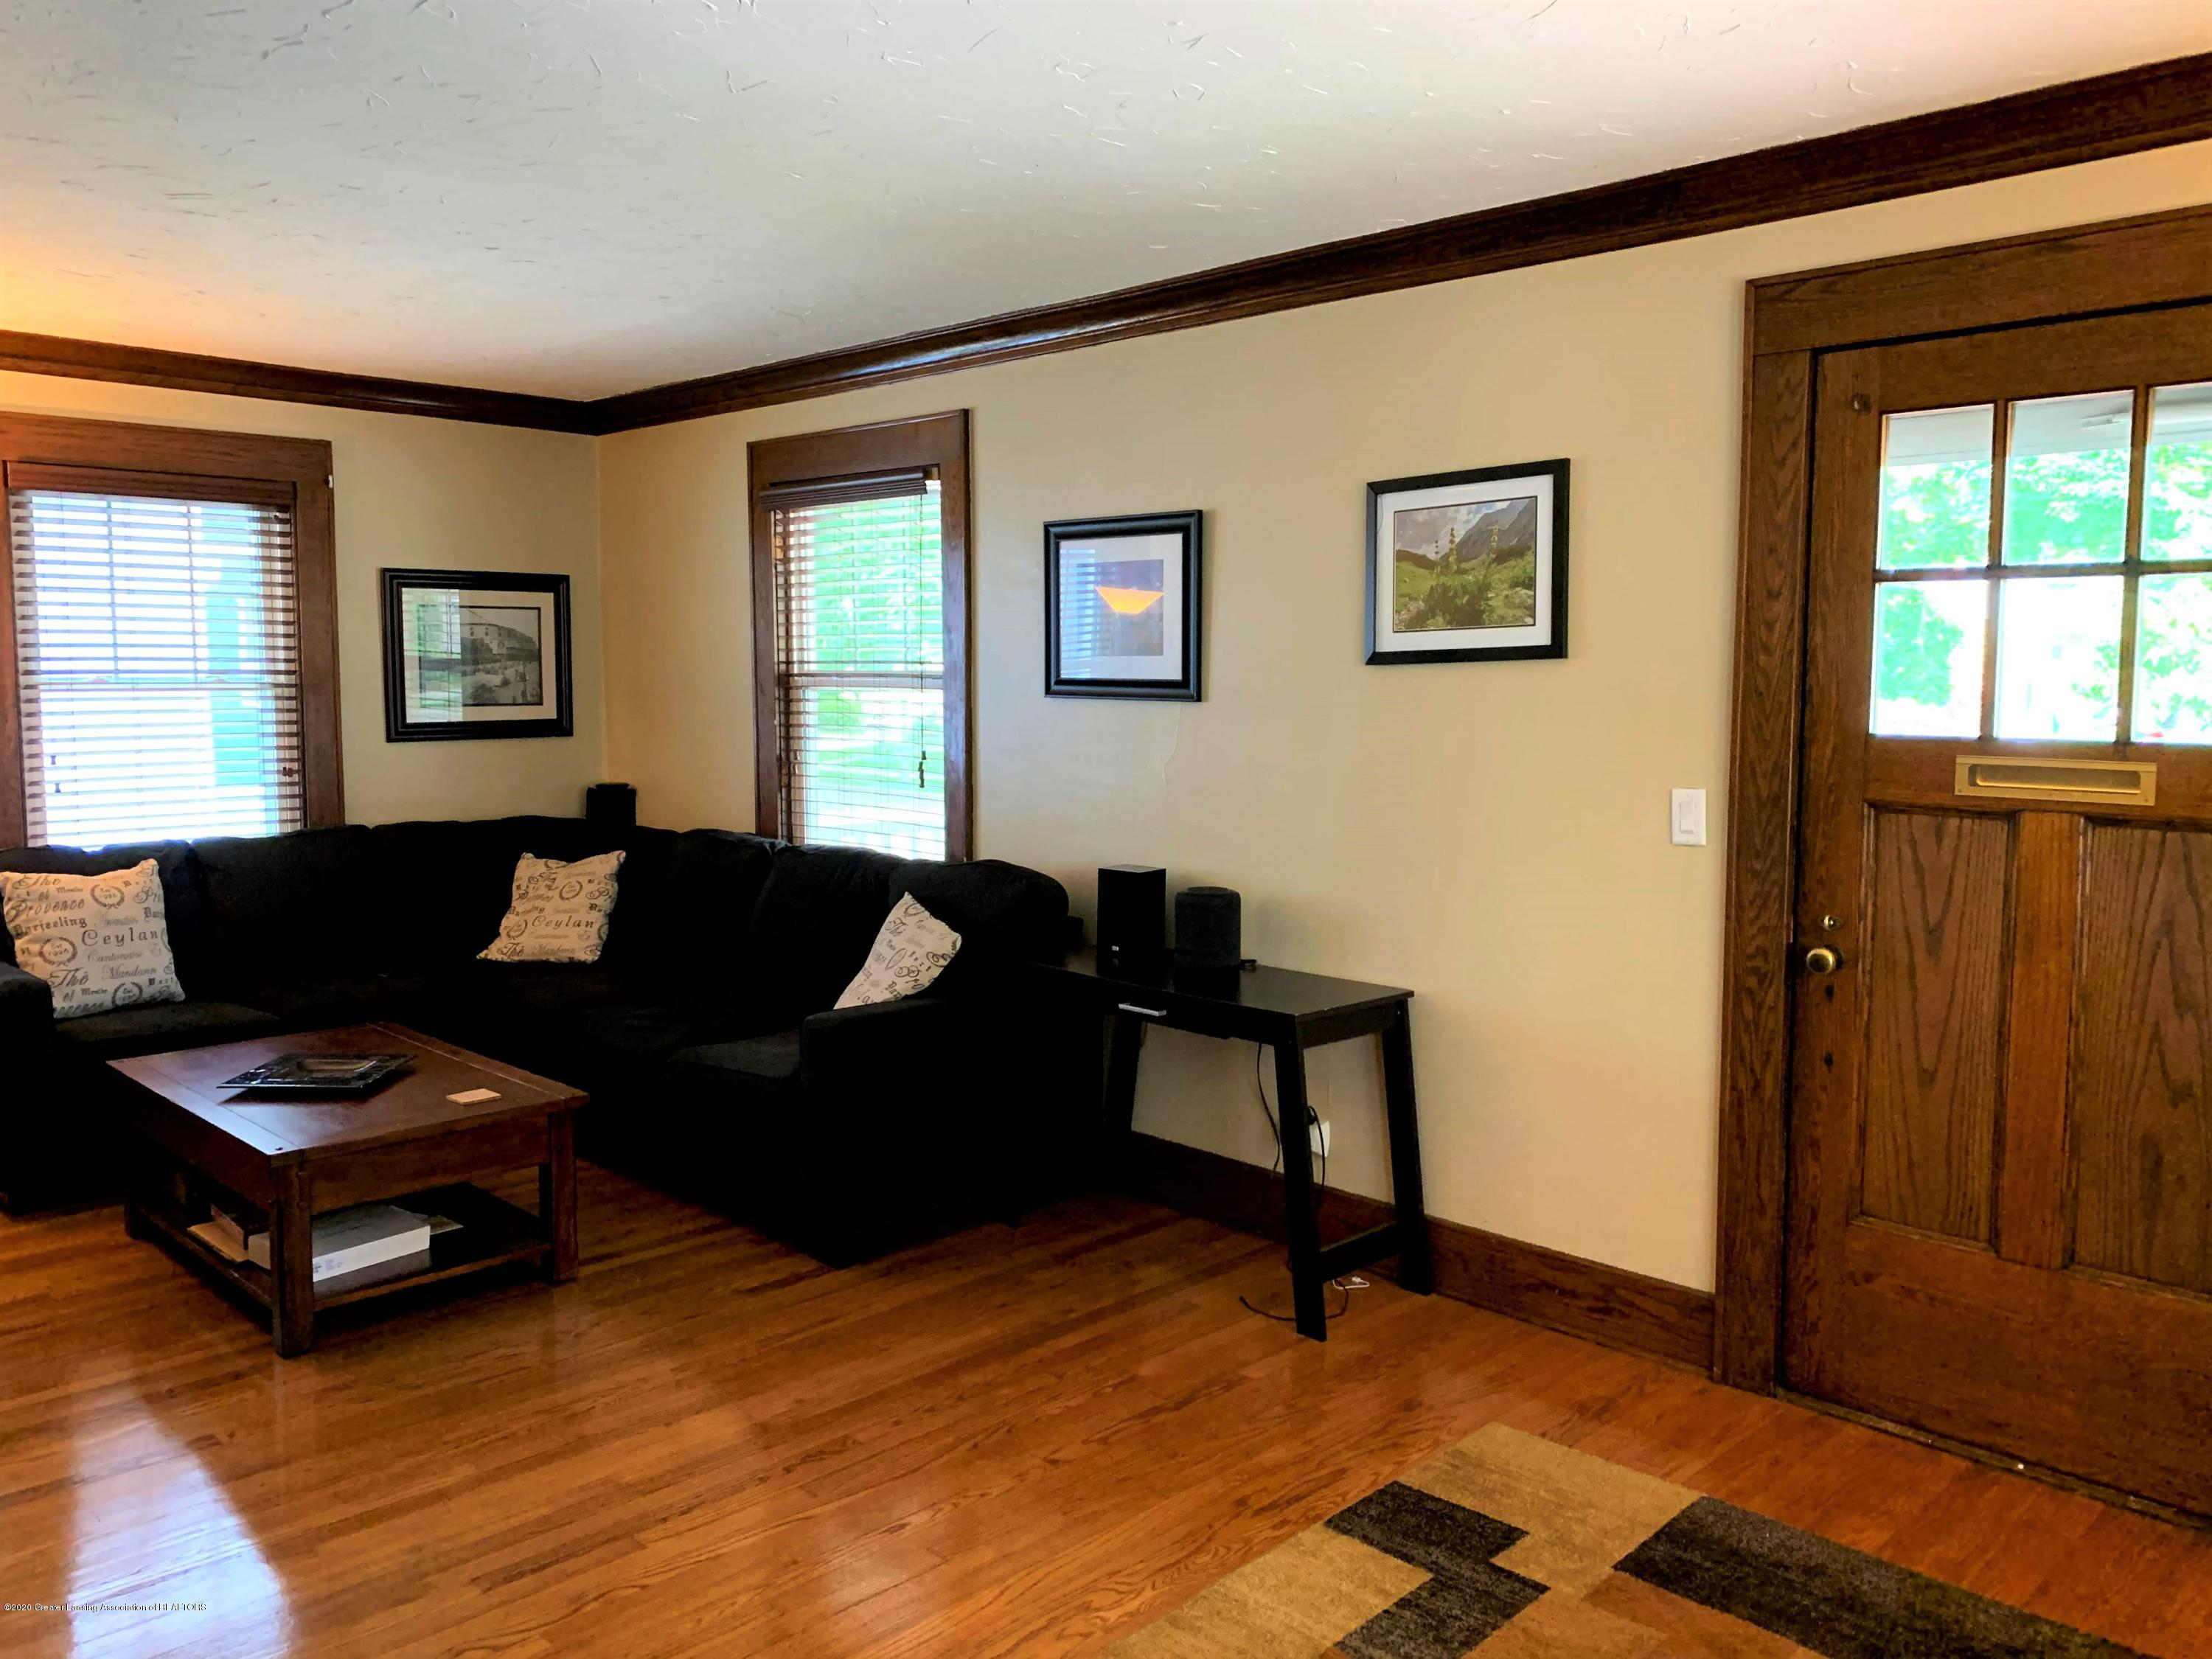 523 N Jenison Ave - Living room - 7